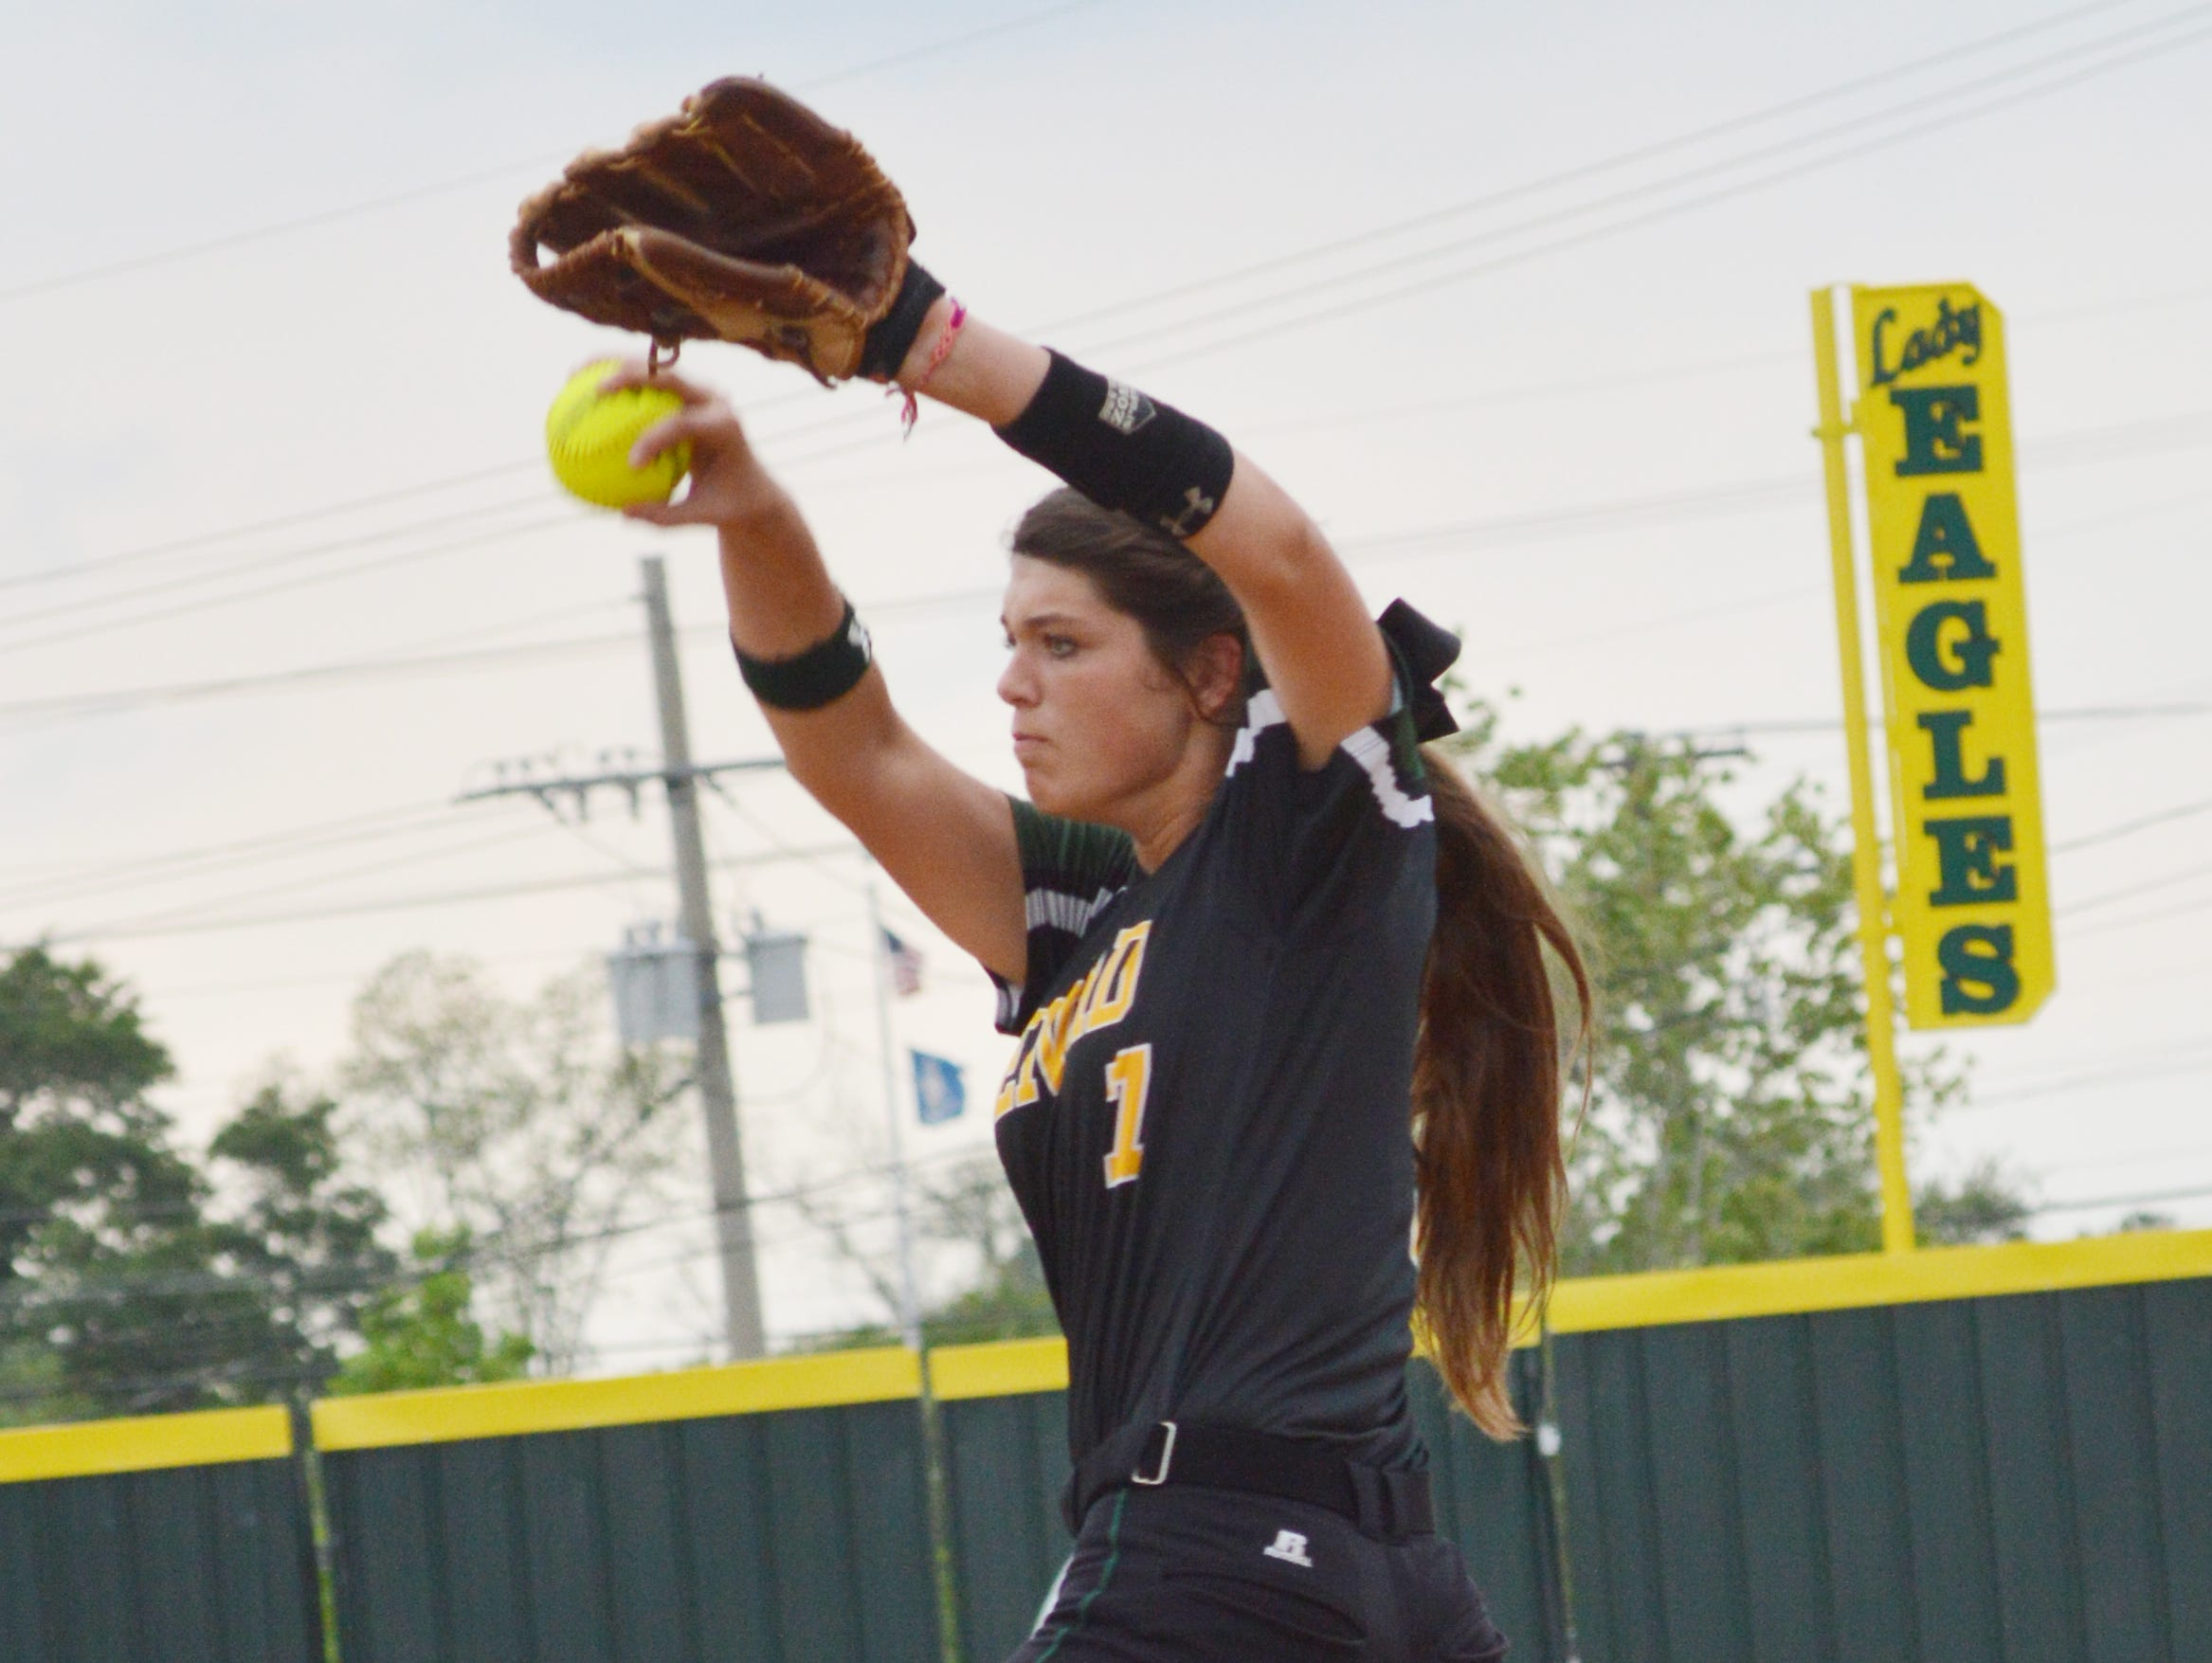 Menard's Kayla Busby (7) will be one of five Central Louisiana players competing in the LHSCA Softball All-Star Games at Louisiana College Friday and Saturday.